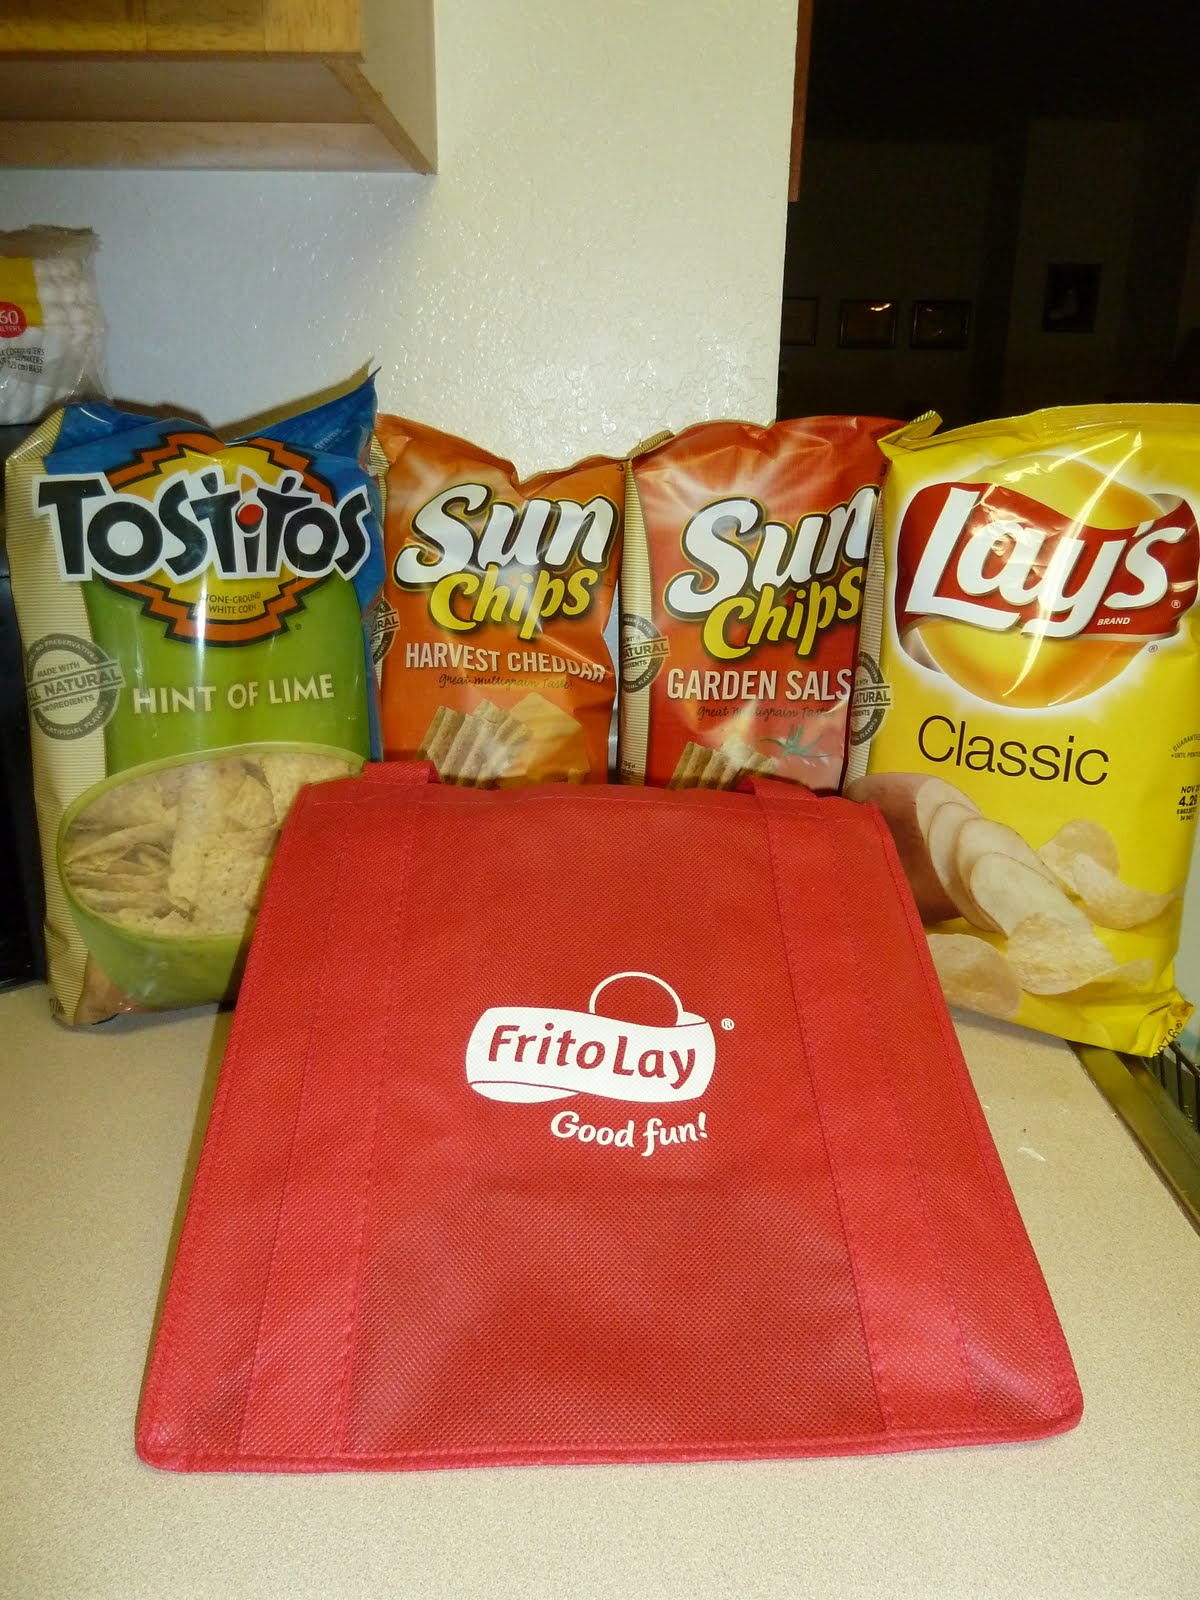 frito lay new product essay Frito lay case study essay by variety for current consumers and appeal to new consumers frito-lay branded products are sold to frito lay case study (2006.